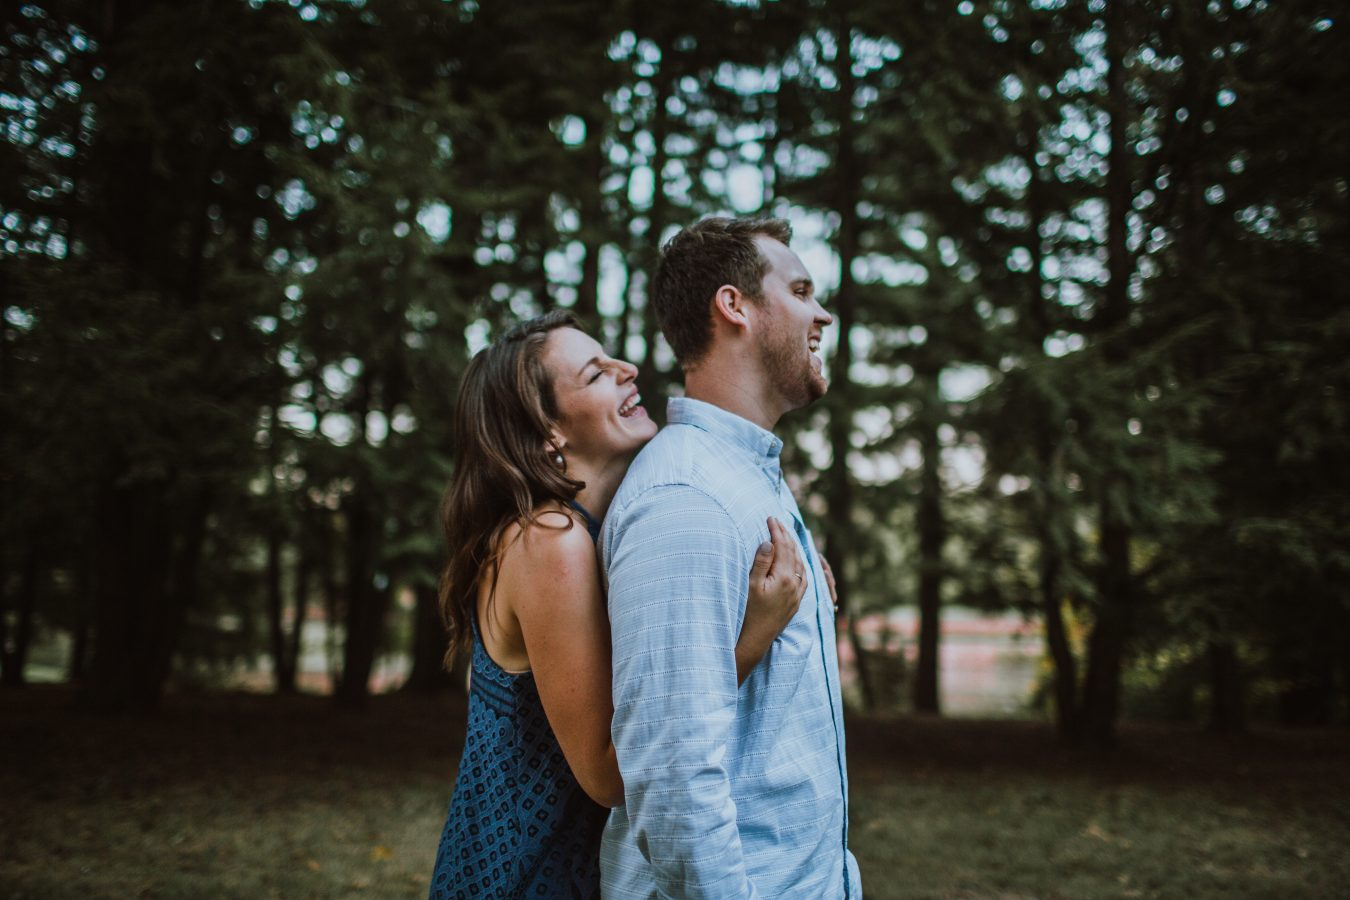 Allerton Park Engagement // Jessica + Lyle - Destination Wedding Photographer // Brad Hart